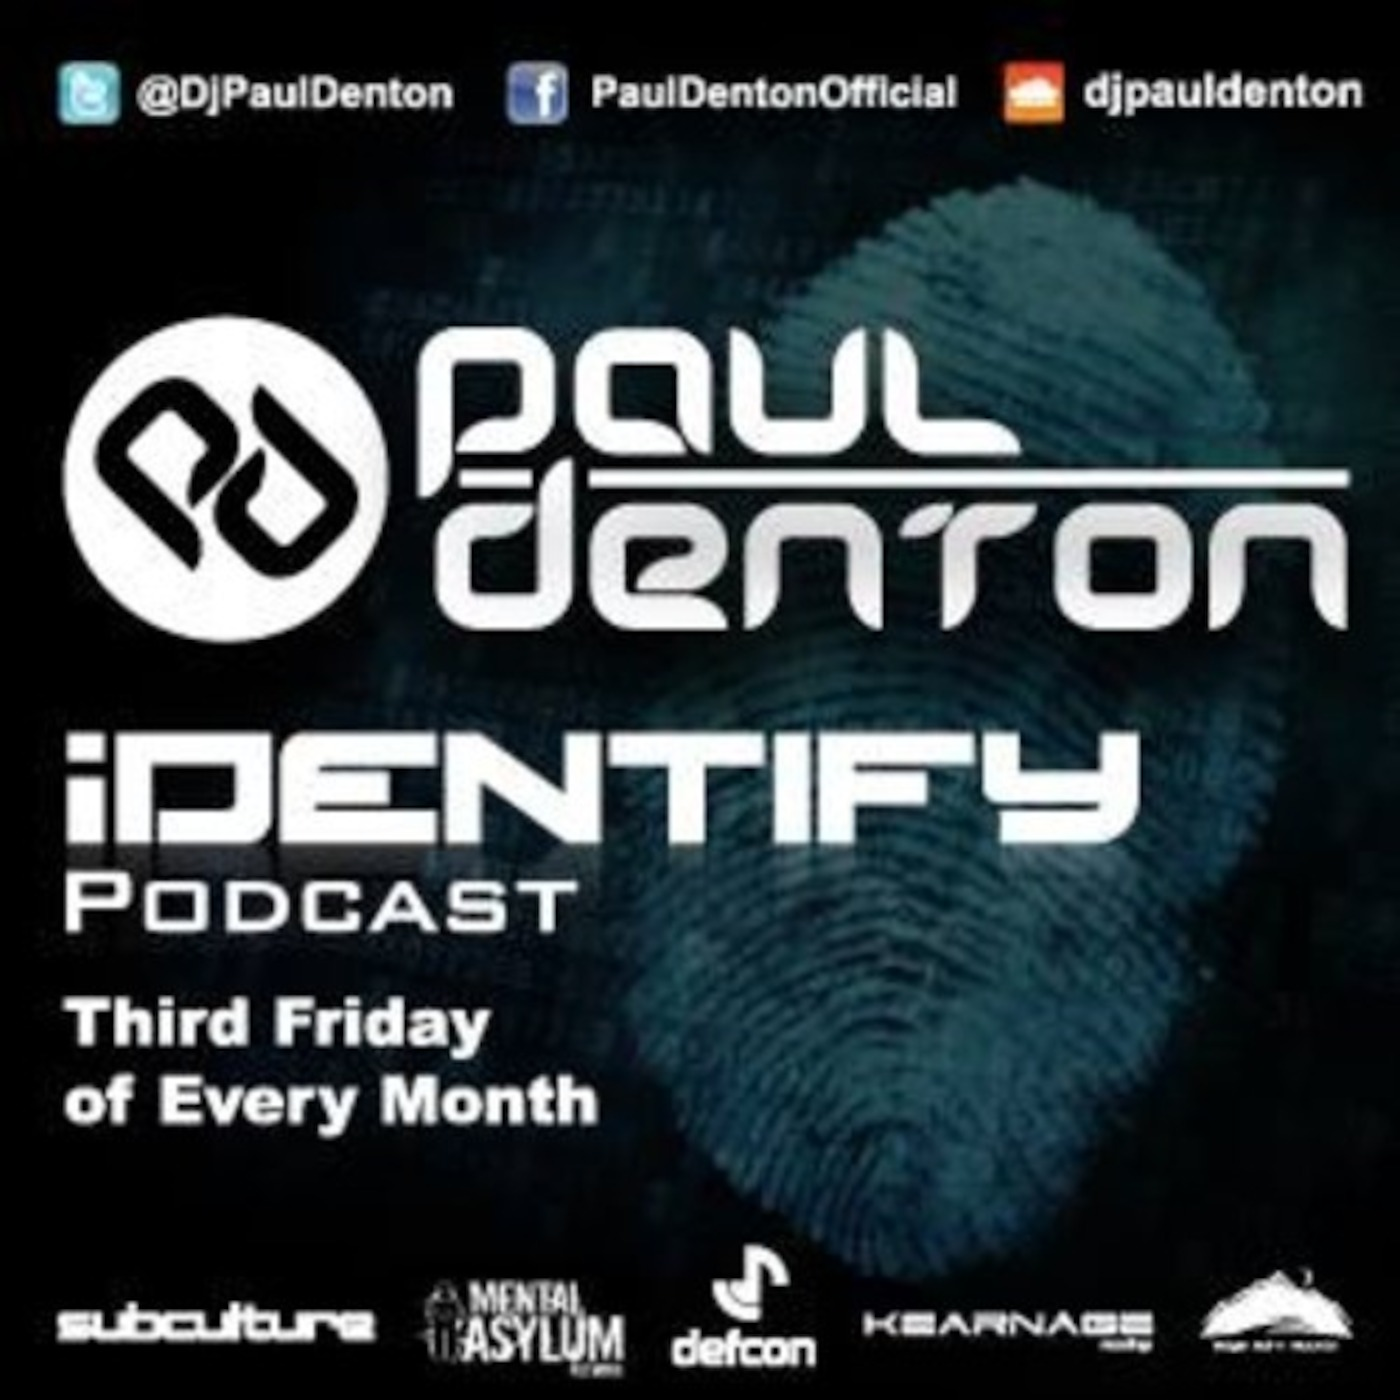 Paul Denton's iDentify Podcast